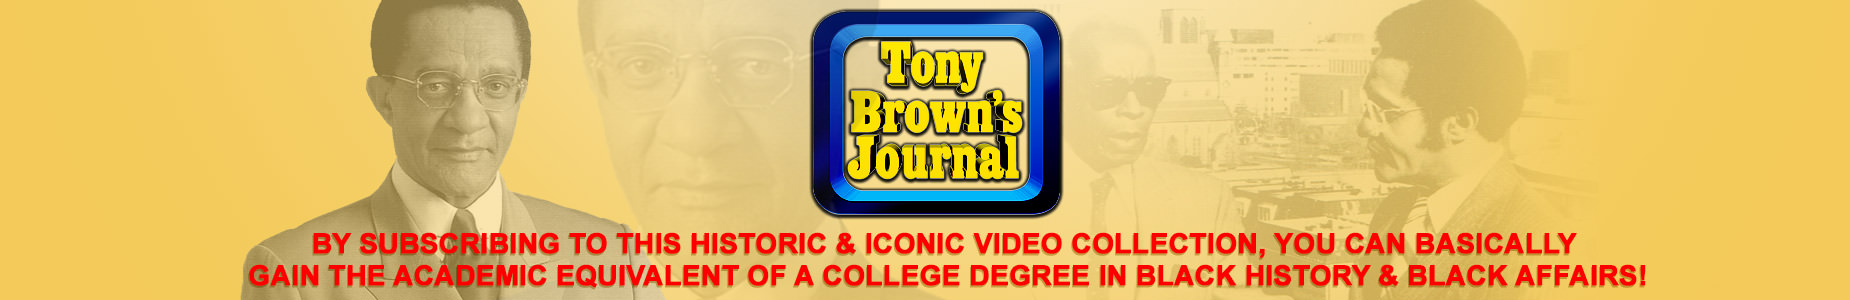 Tony Browns Journal